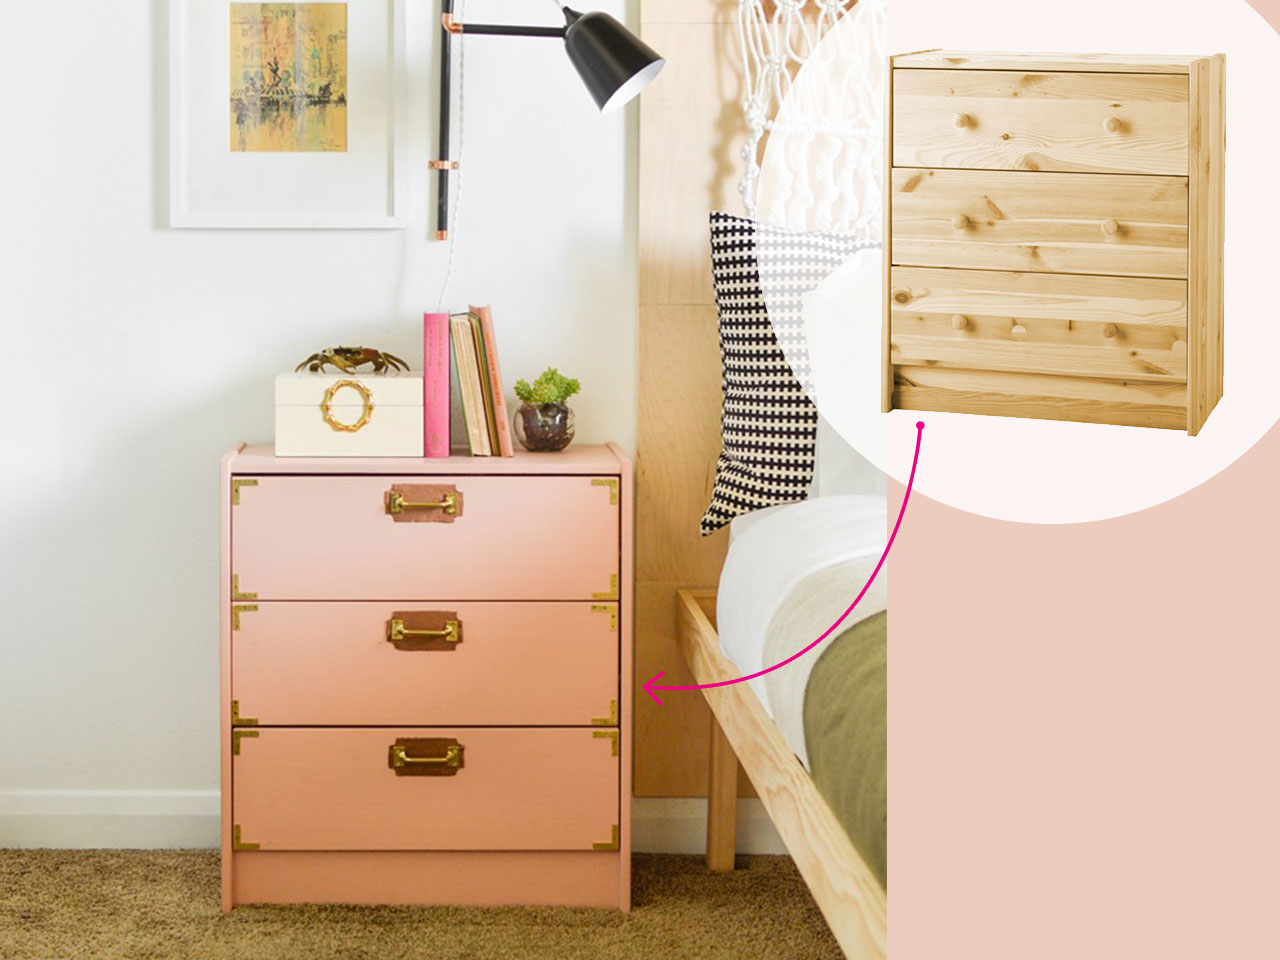 30 of the best diy ikea hacks ever chatelaine. Black Bedroom Furniture Sets. Home Design Ideas